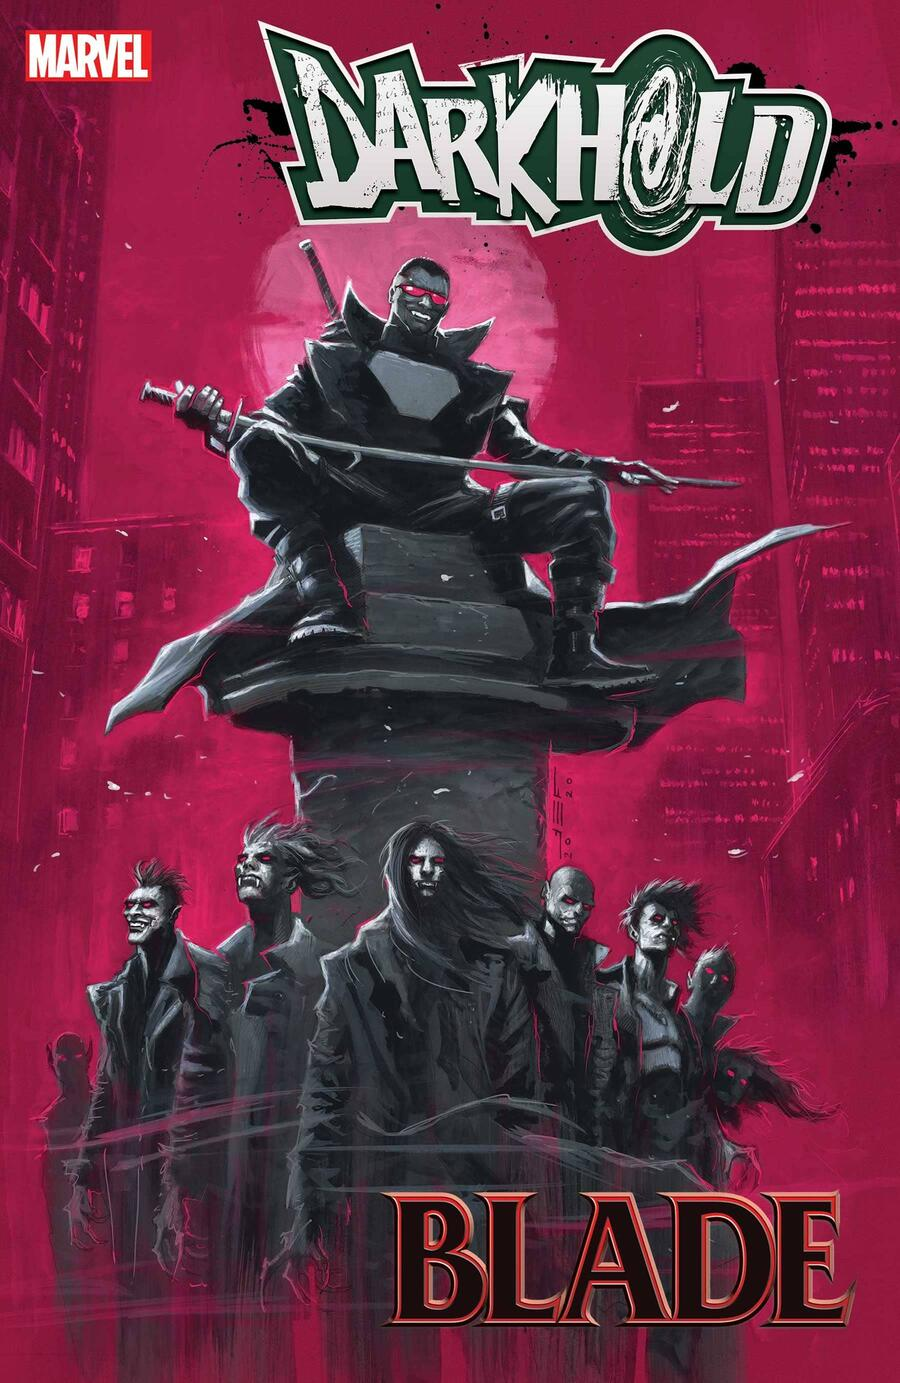 THE DARKHOLD: BLADE #1 cover by Juan Ferreyra